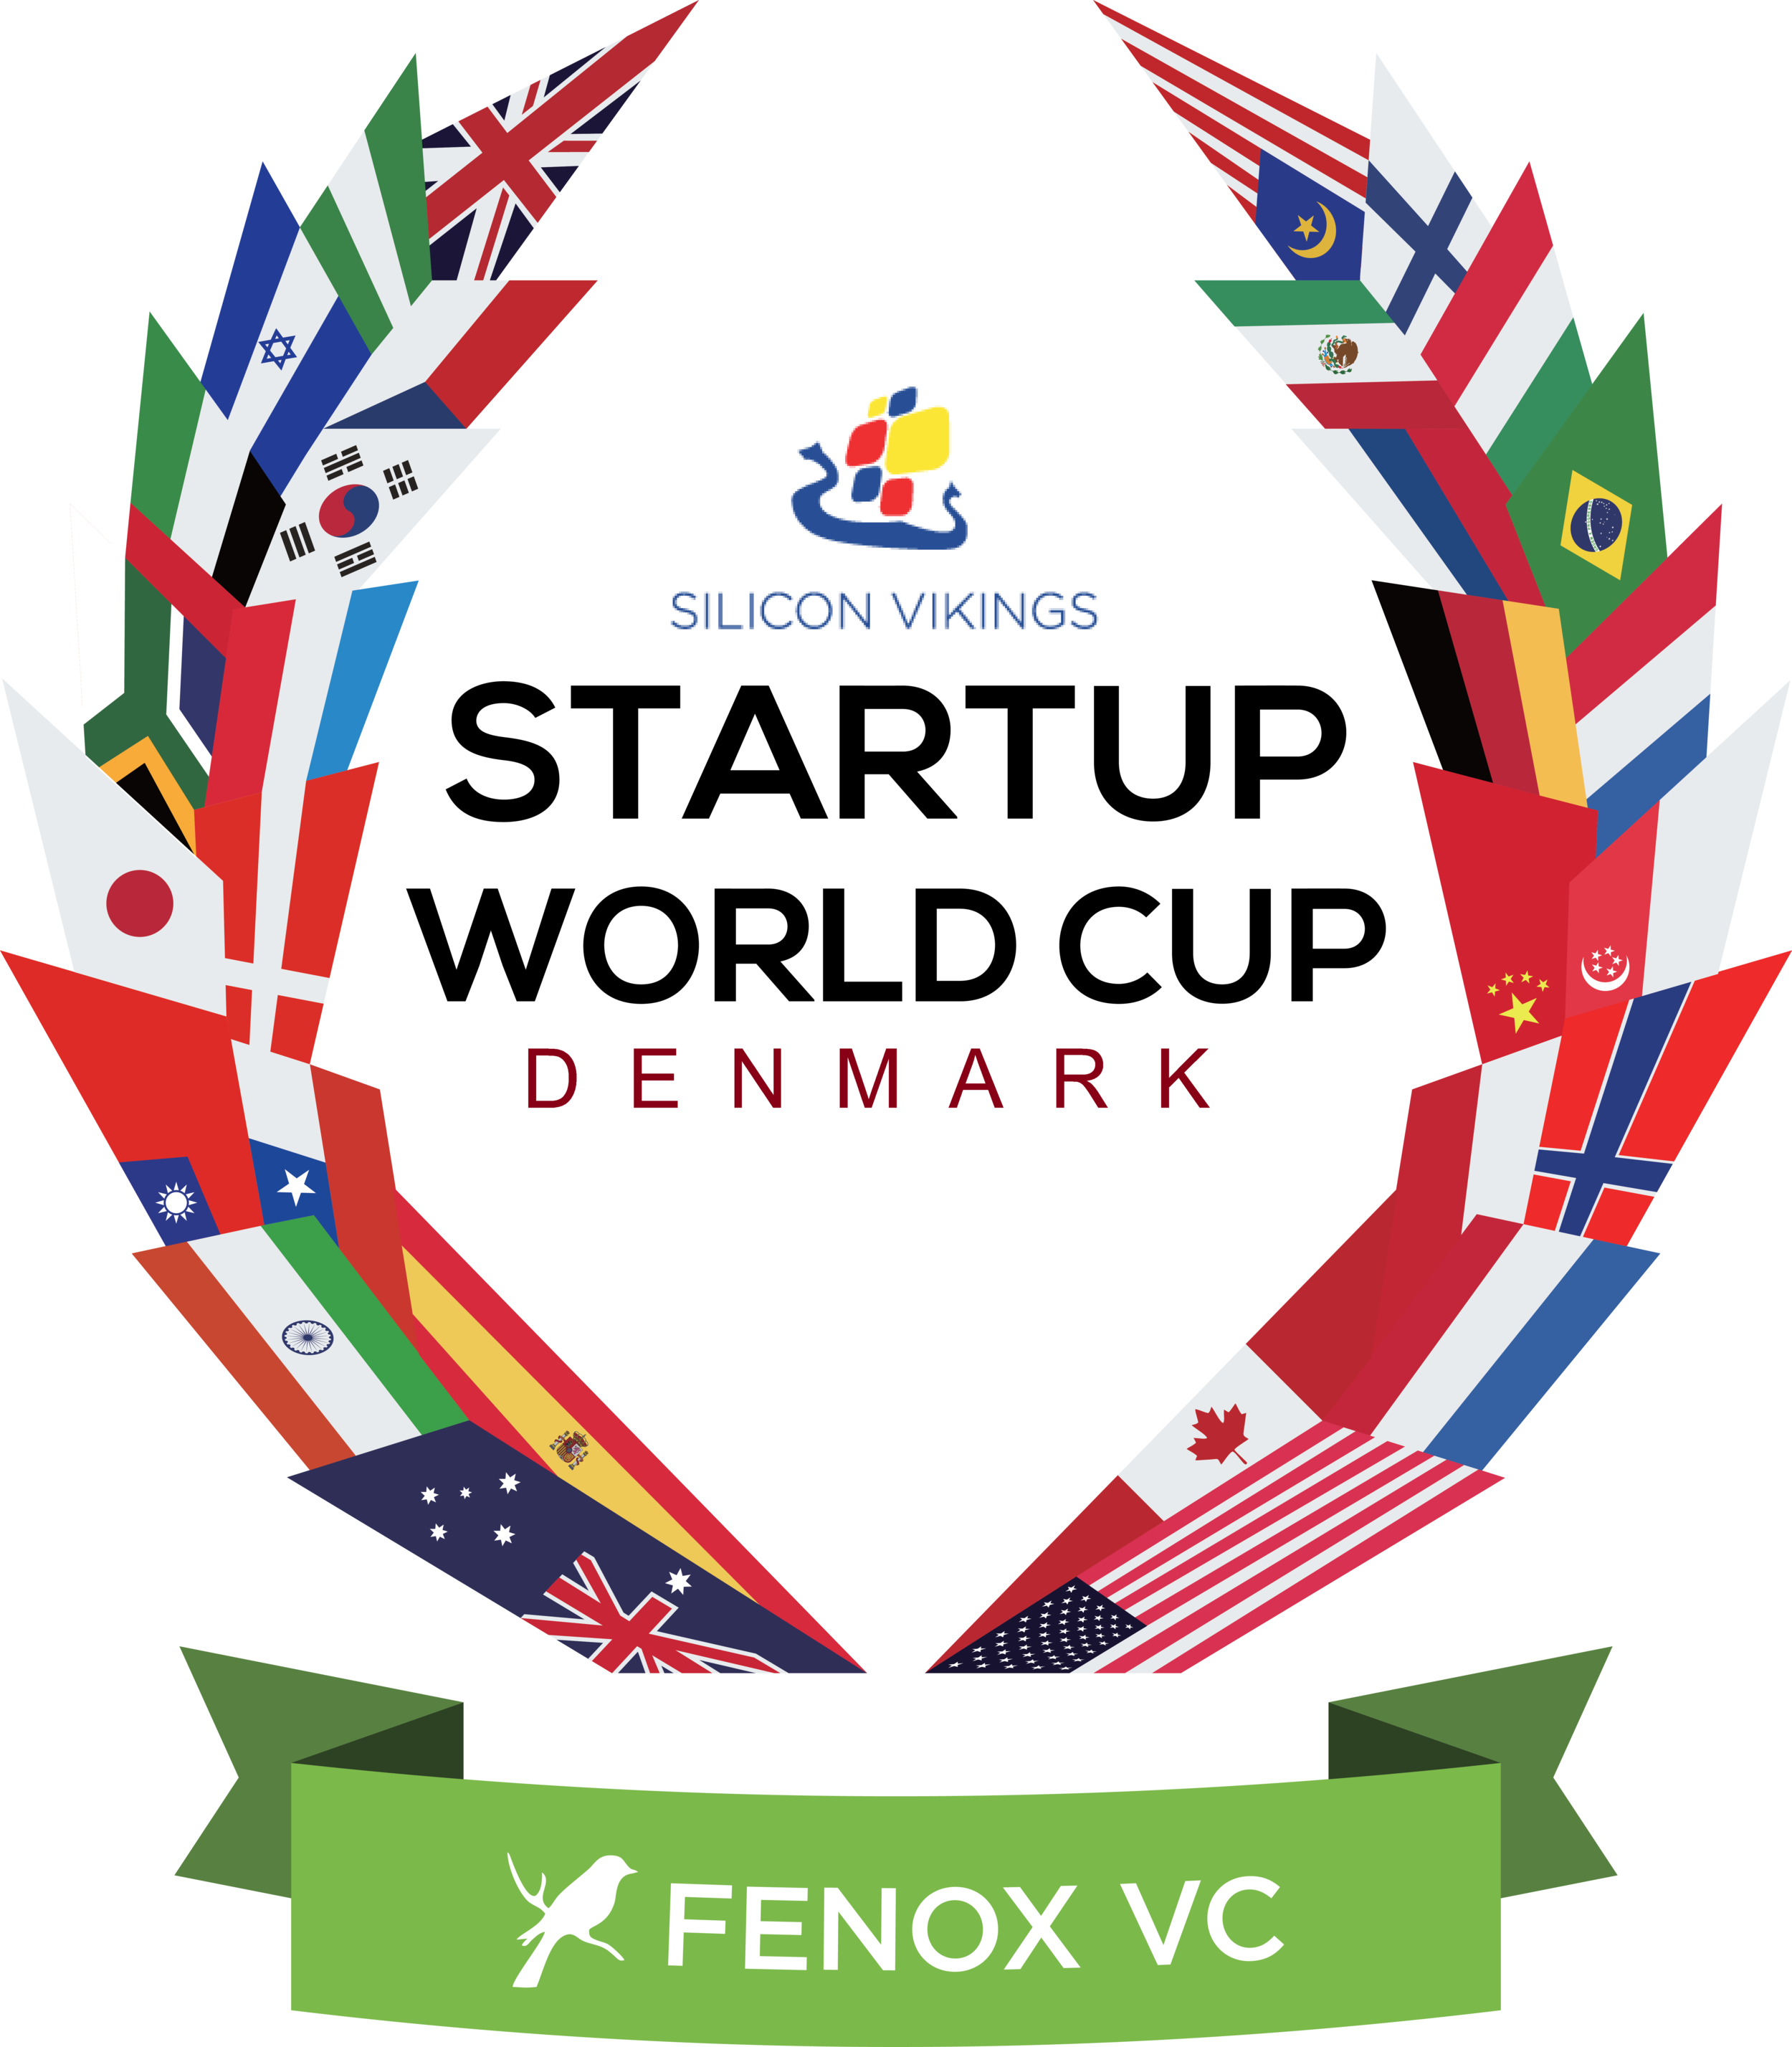 SILICON VIKINGS & STARTUP WORLD CUP DENMARK COUNTRY COMPETITION -